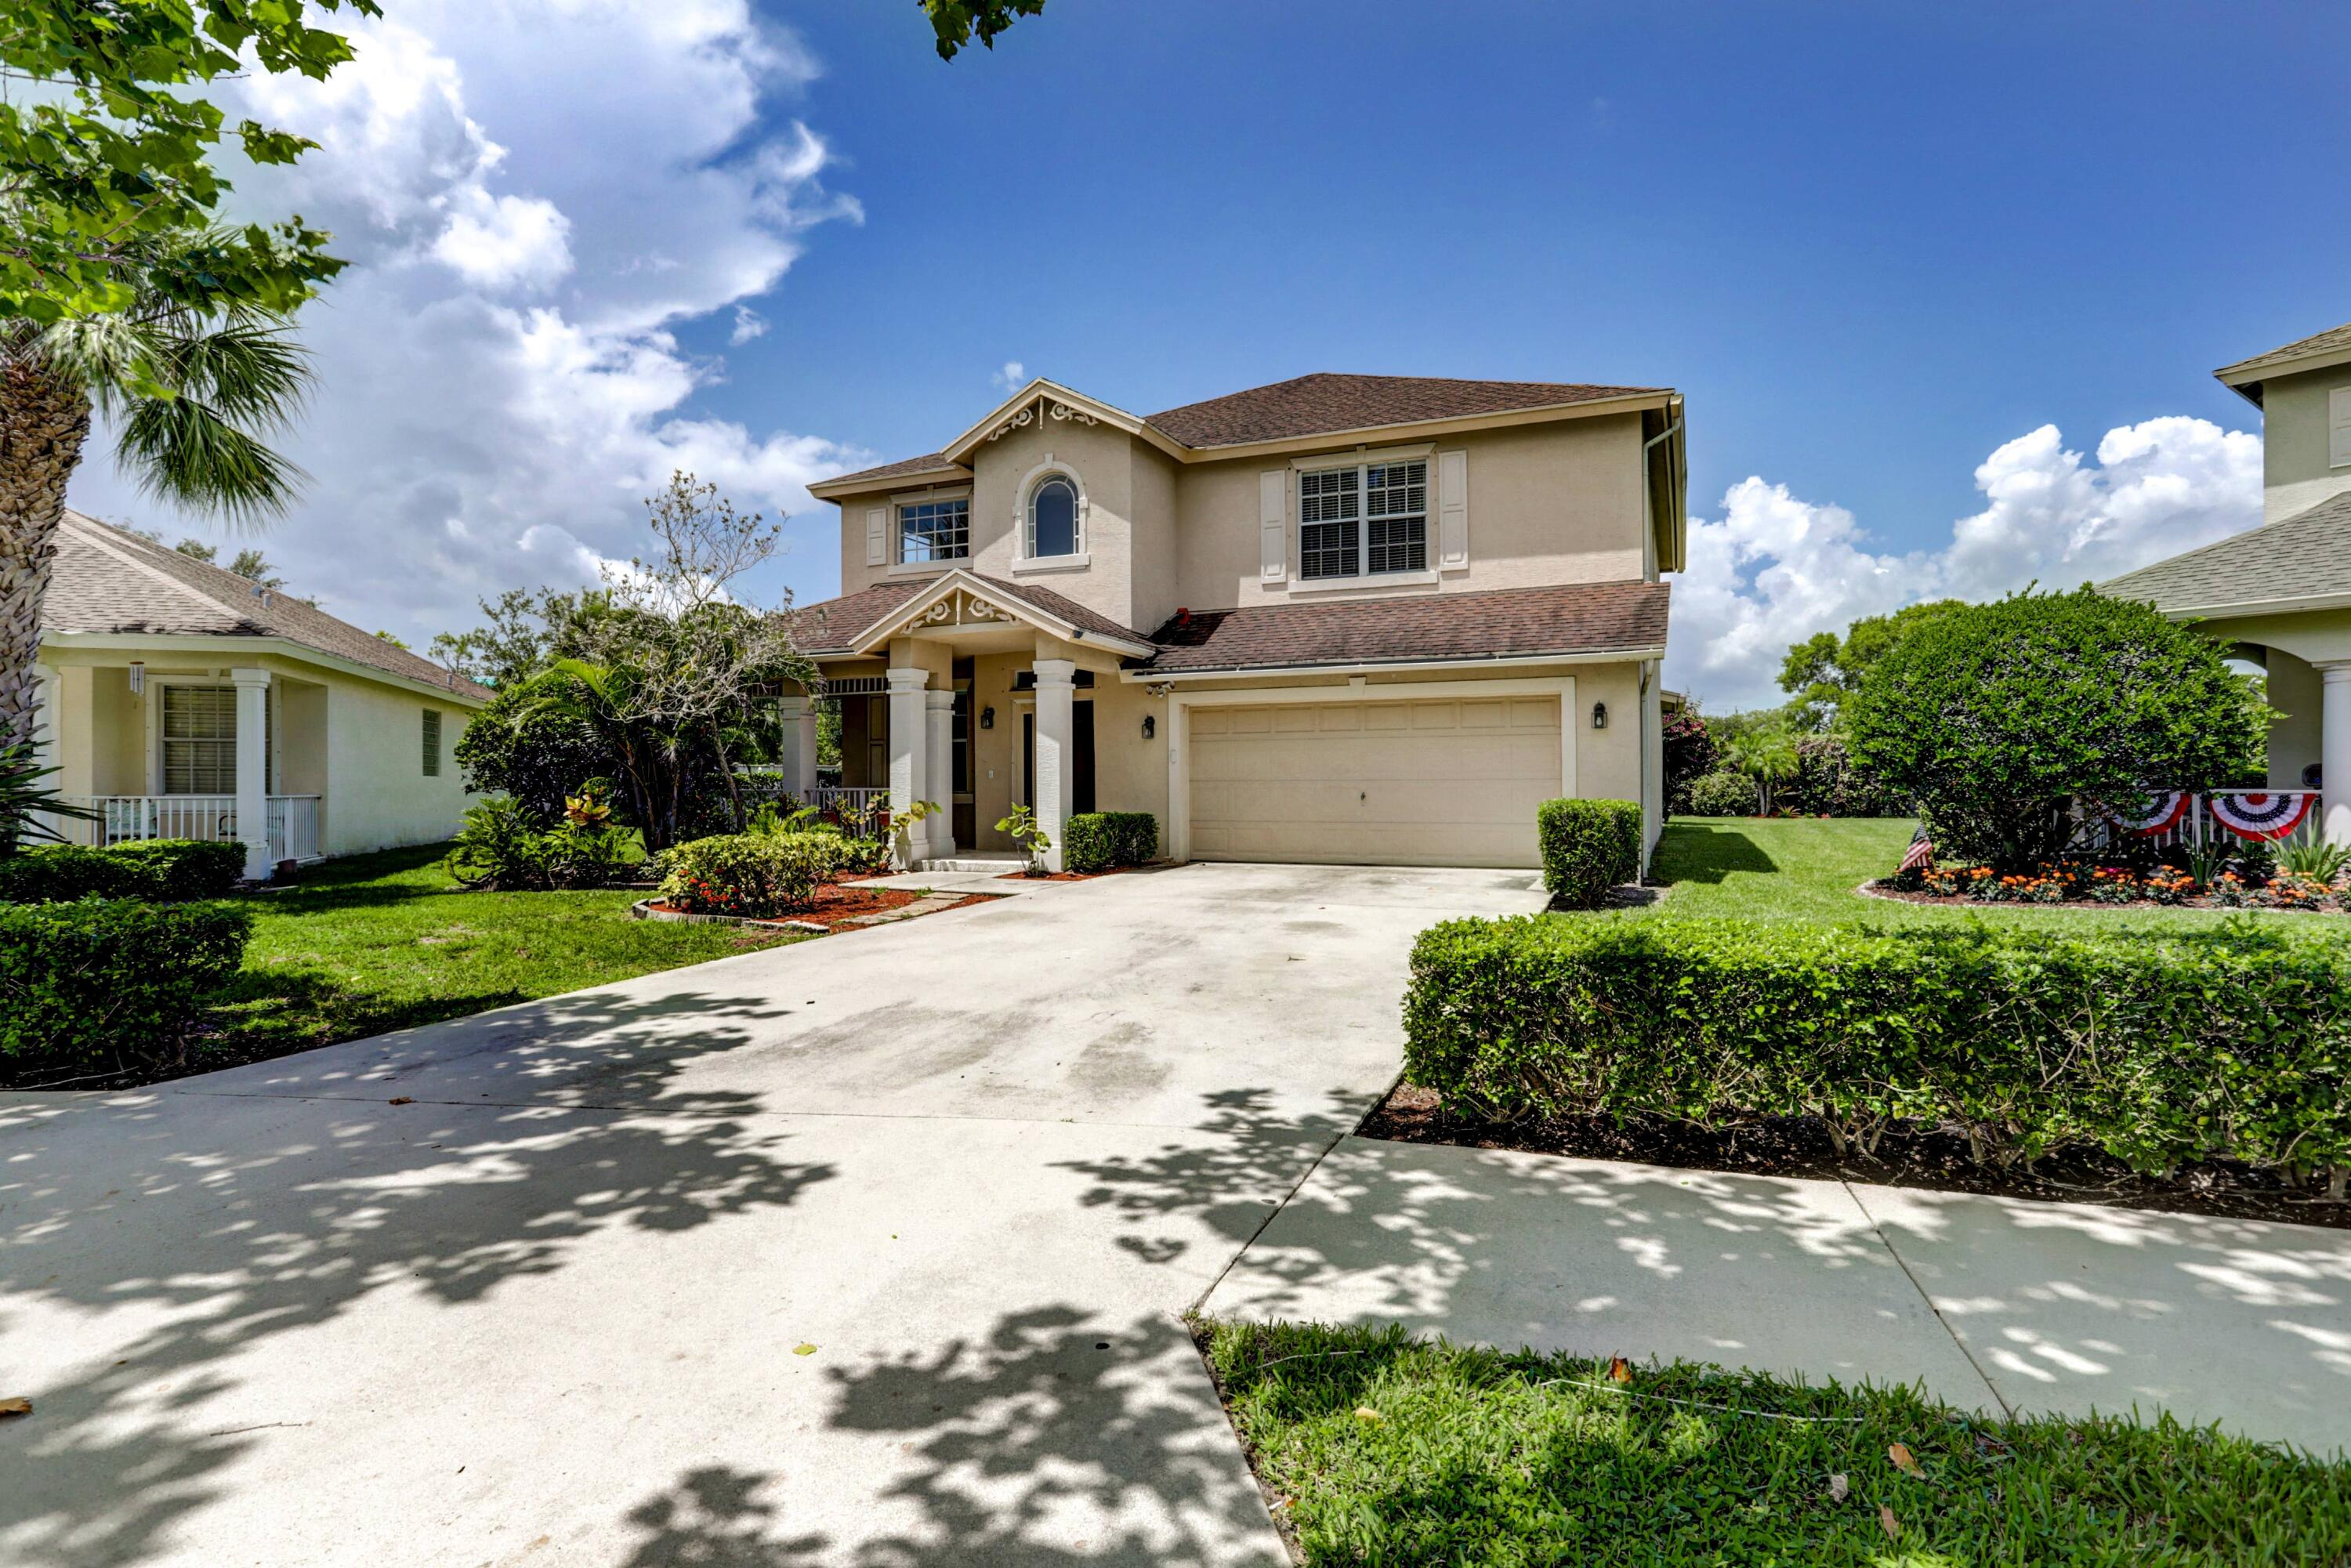 On lockbox. Easy to show. Come and see a beautiful 2 story home with 4 bedrooms, 3 full bathrooms, and 2 car garage on a big lot in a quiet neighborhood. Room for pool.  Welcoming living room and formal dining area. Less than 2 miles to the beach and downtown.